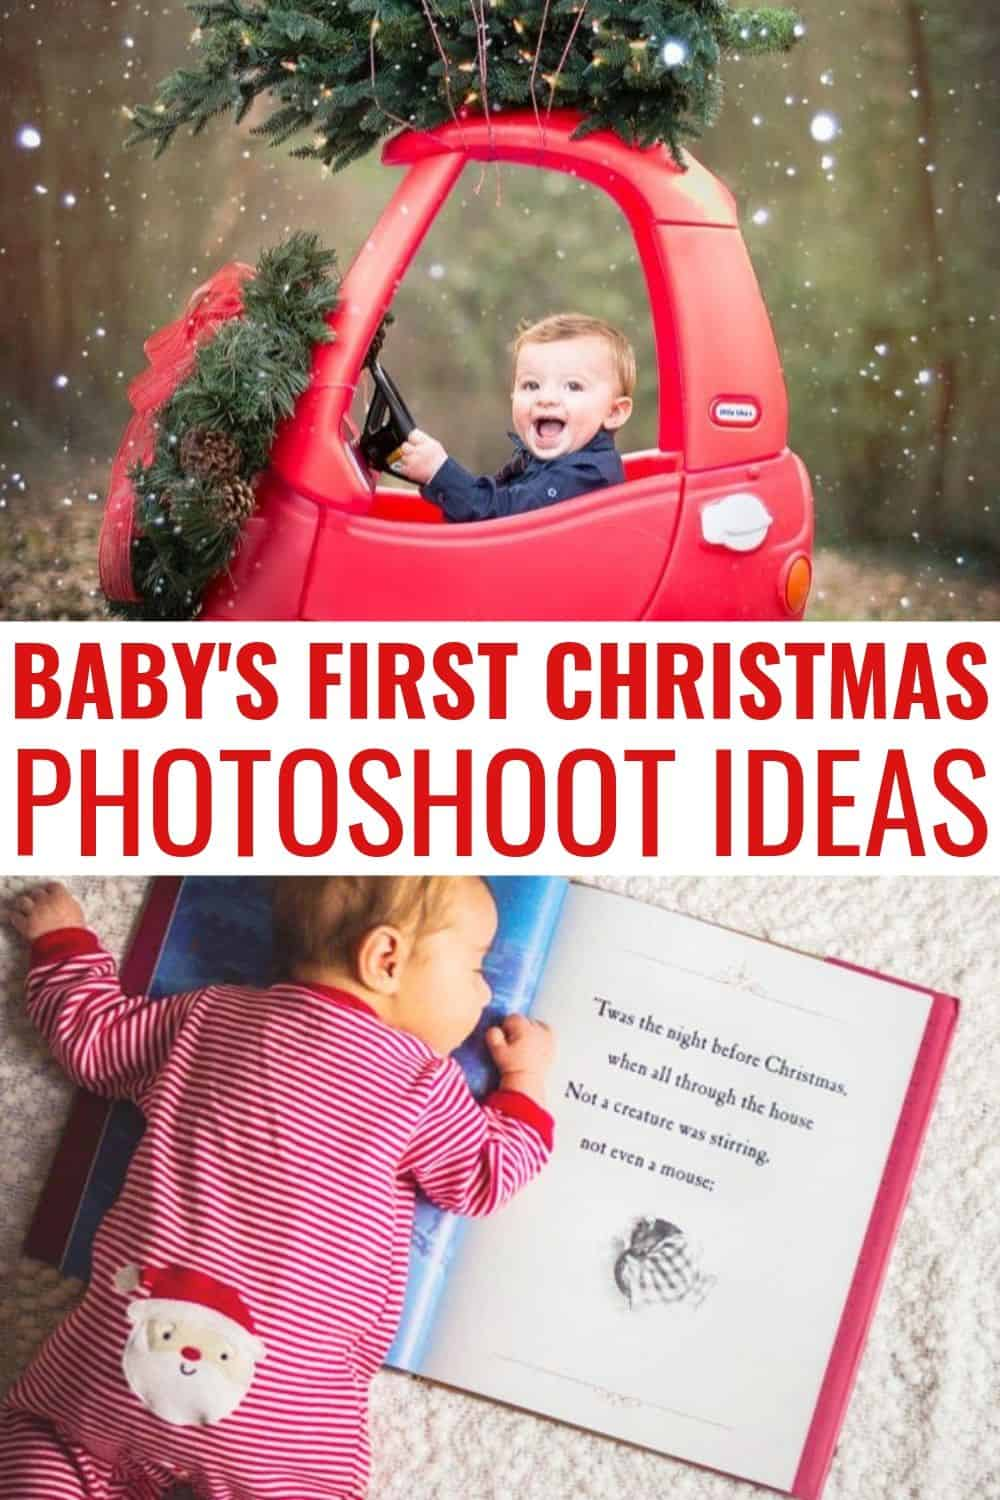 Baby's First Christmas Pictures that you can DIY! Baby's first Christmas for both girls and boy is such a special time for families! Capture all the great moments, whether in front of your Christmas trees, with siblings, or even the family dog. We cover baby photography tips AND 10 real life examples of Christmas baby photoshoot ideas. #babysfirstchristmas #christmasphotoshoot #christmas